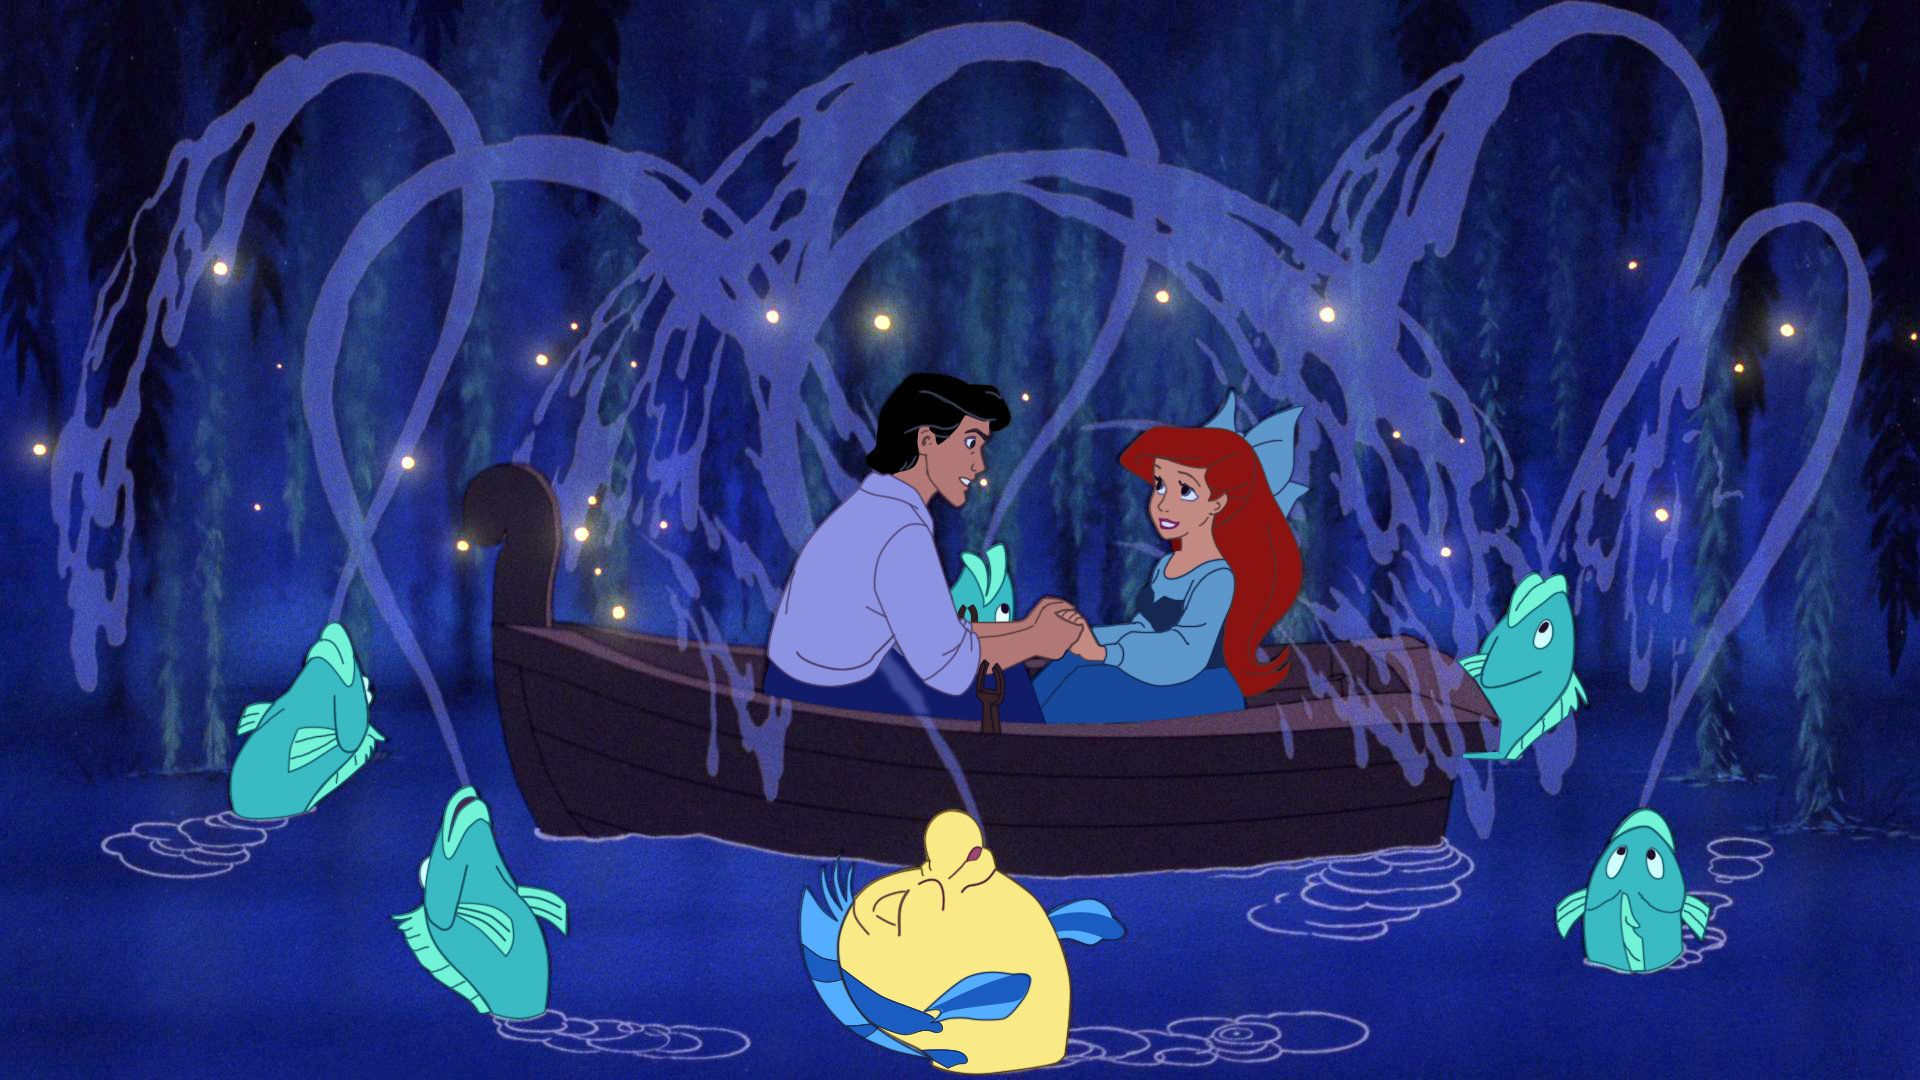 The Voice Of Ariel Won't Make You Watch 'Little Mermaid' (But Please Stop Sending Death